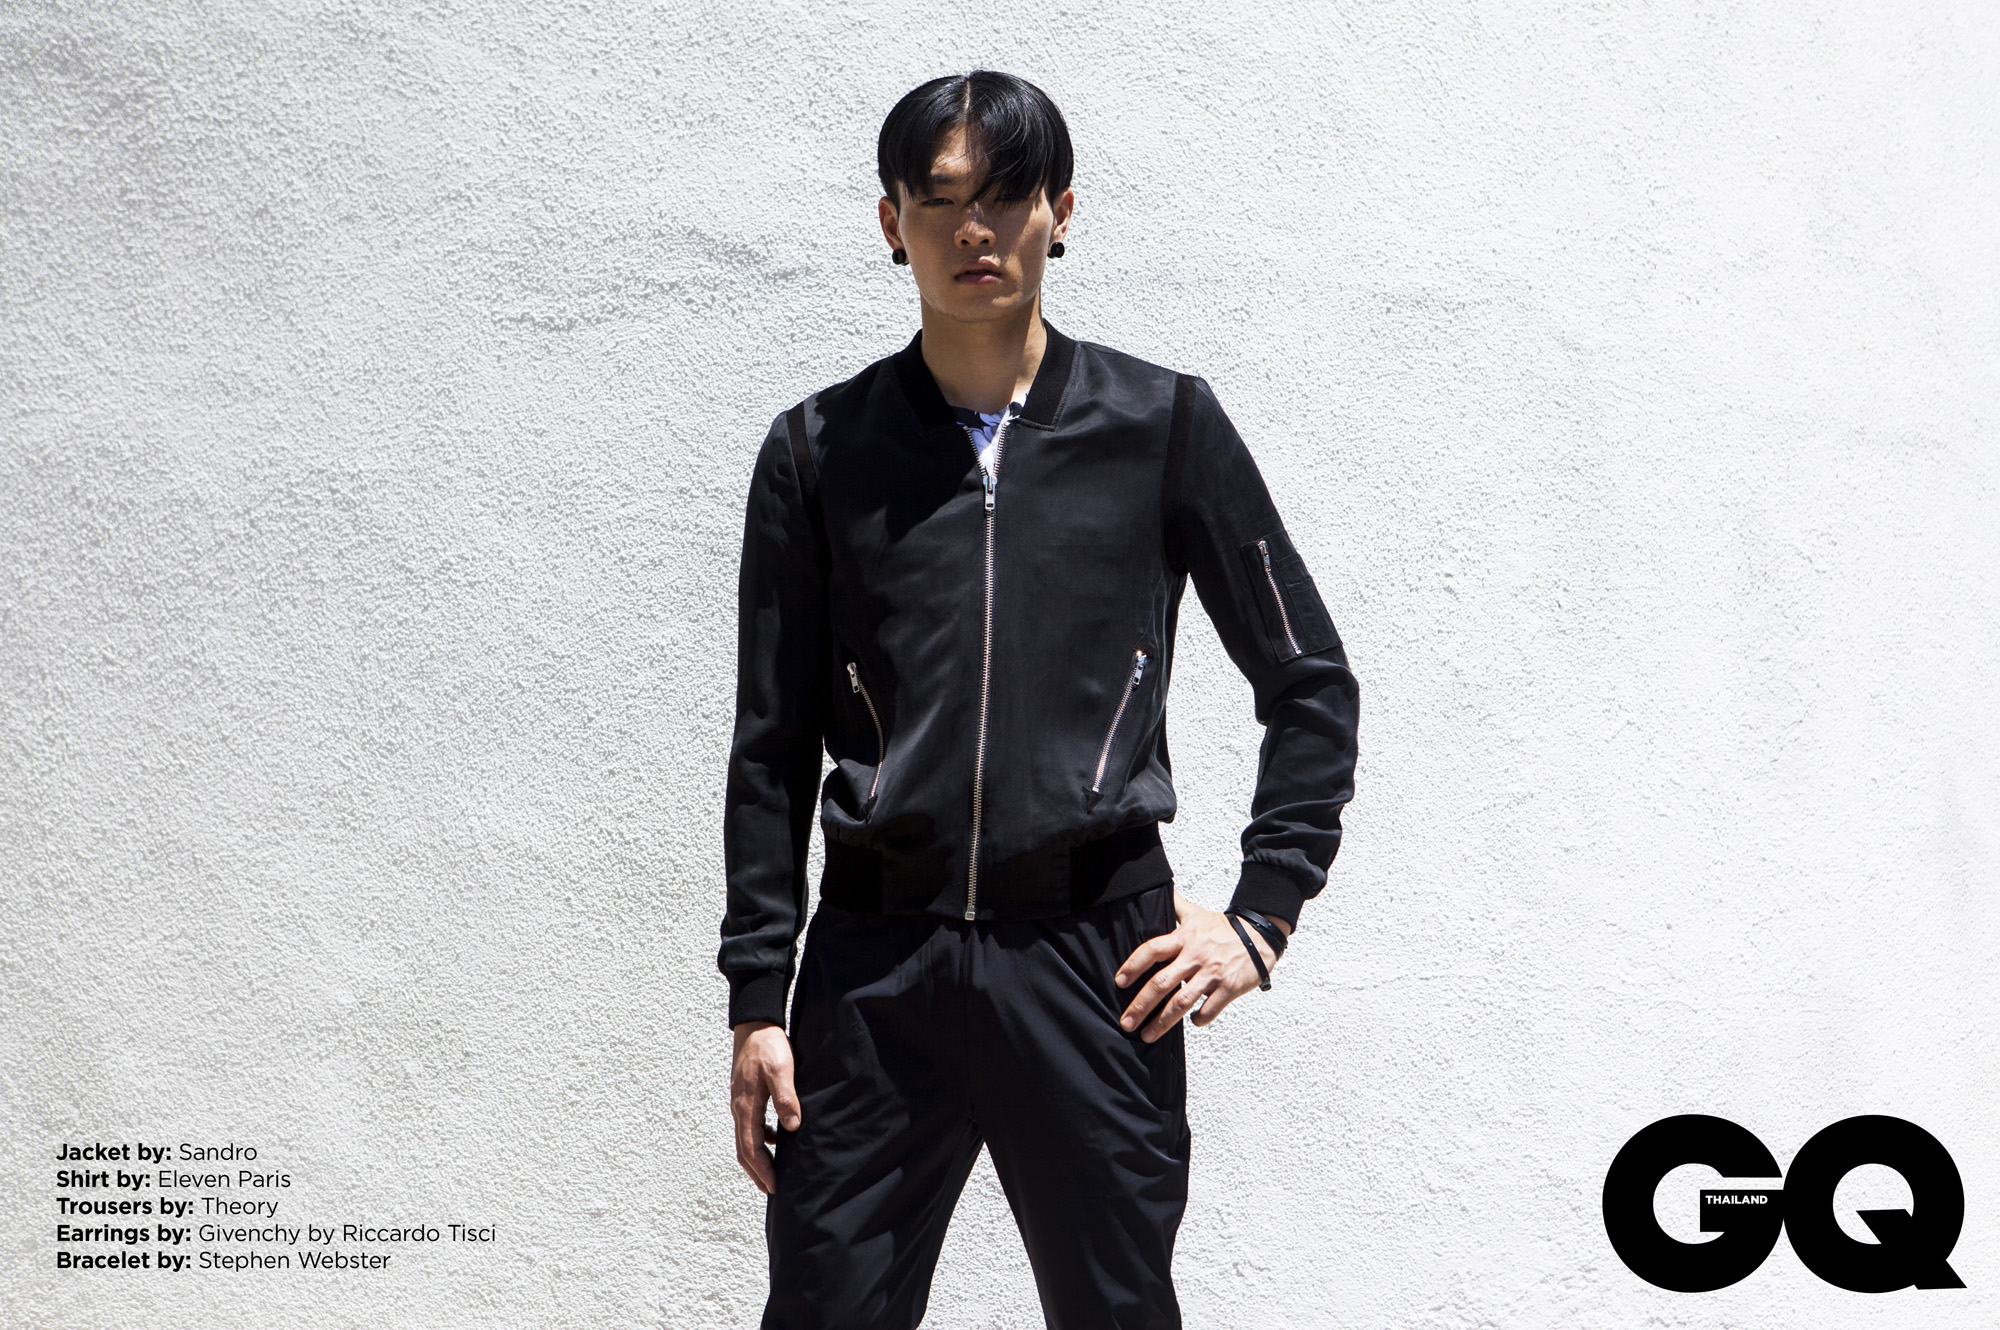 Rebel in Black: Satoshi Toda for GQ Thailand